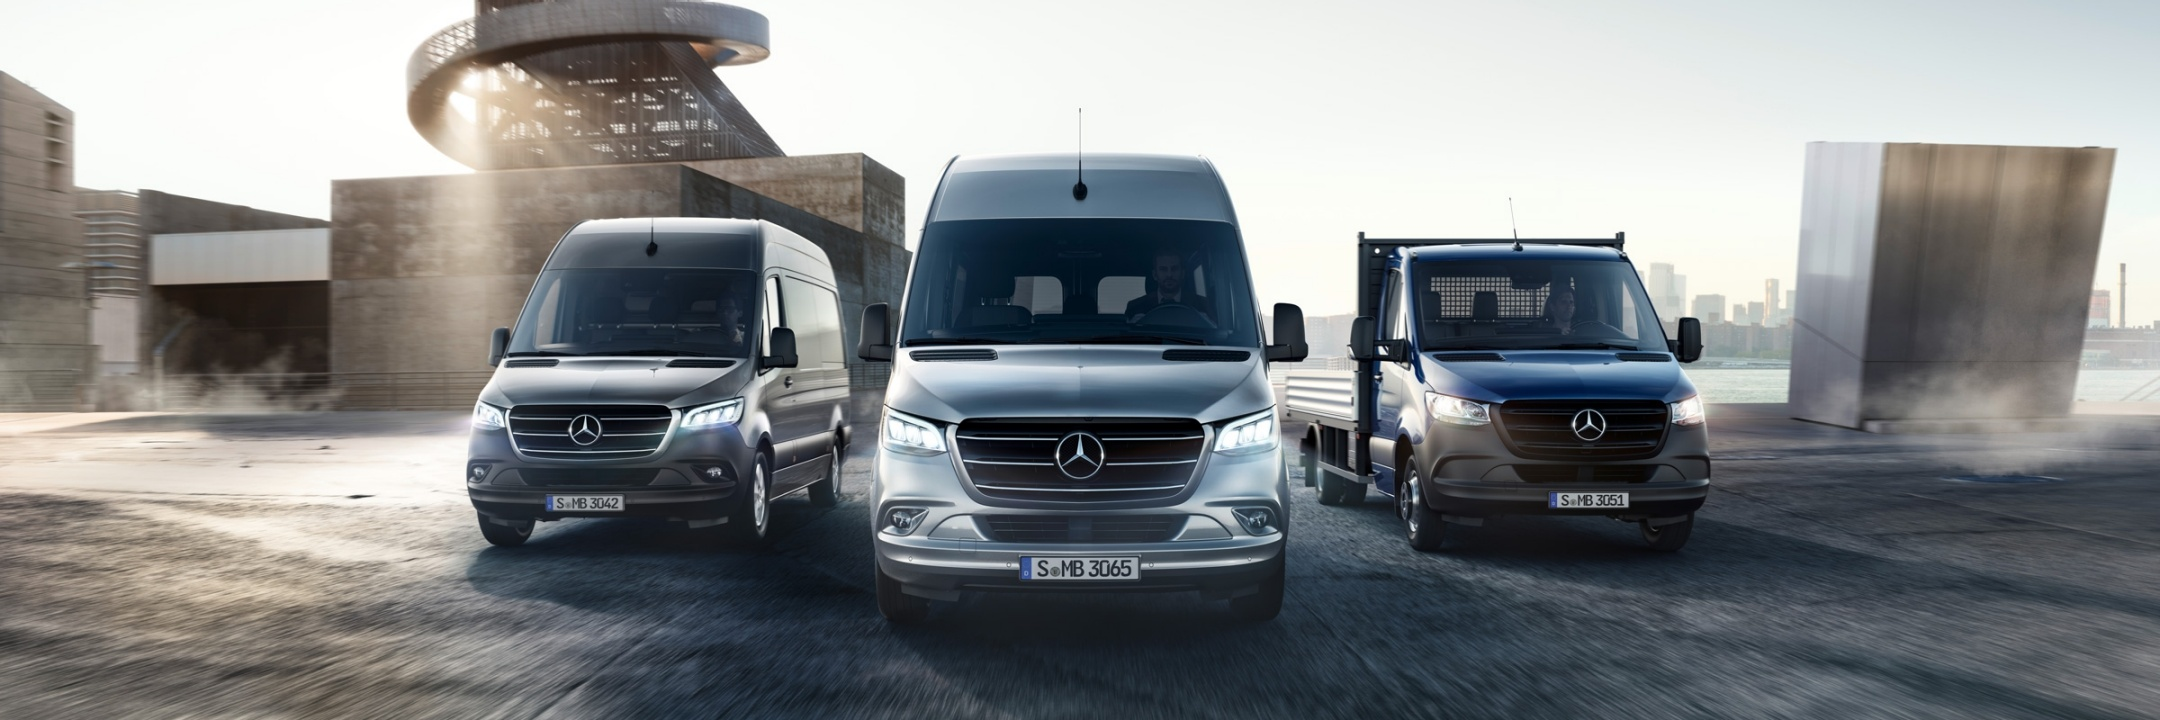 The image shows a range of vehicles including the new Sprinter, Vito and Citan.